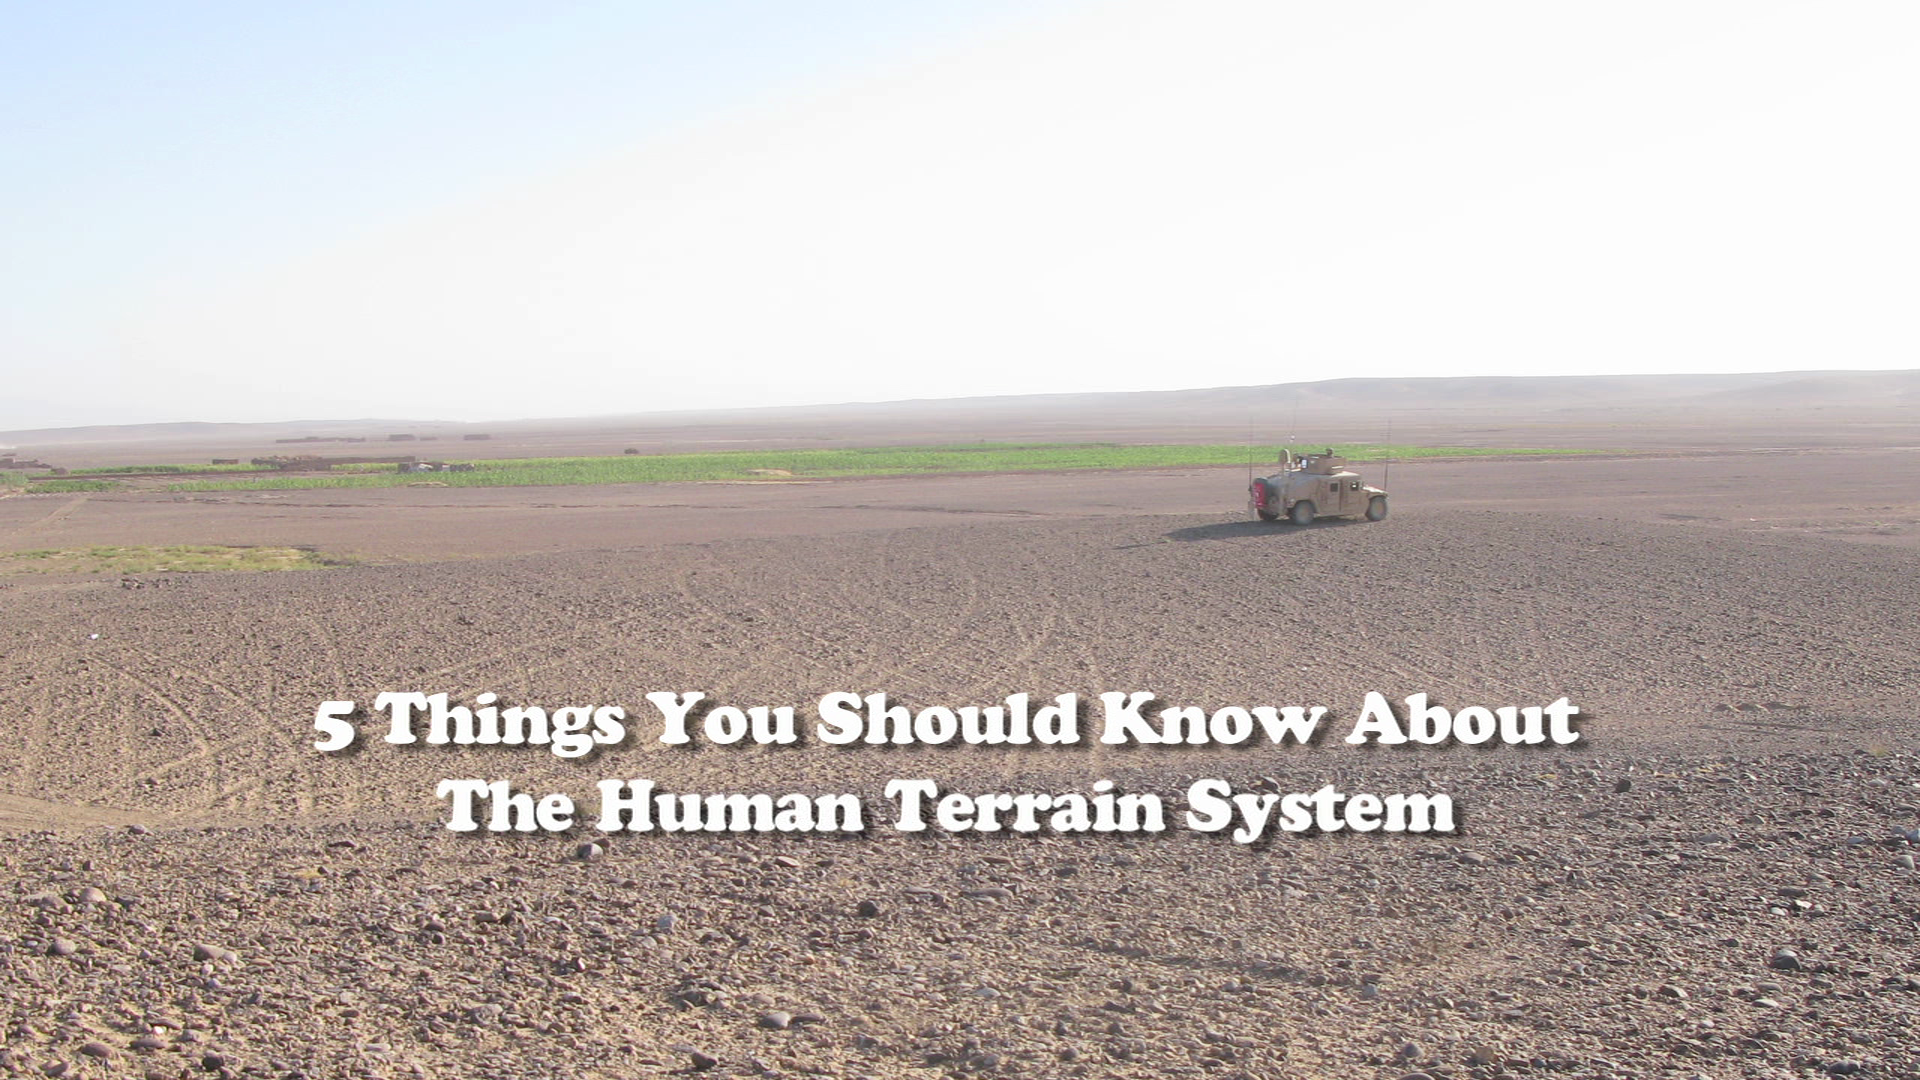 Five Things You Need to Know About the Human Terrain System